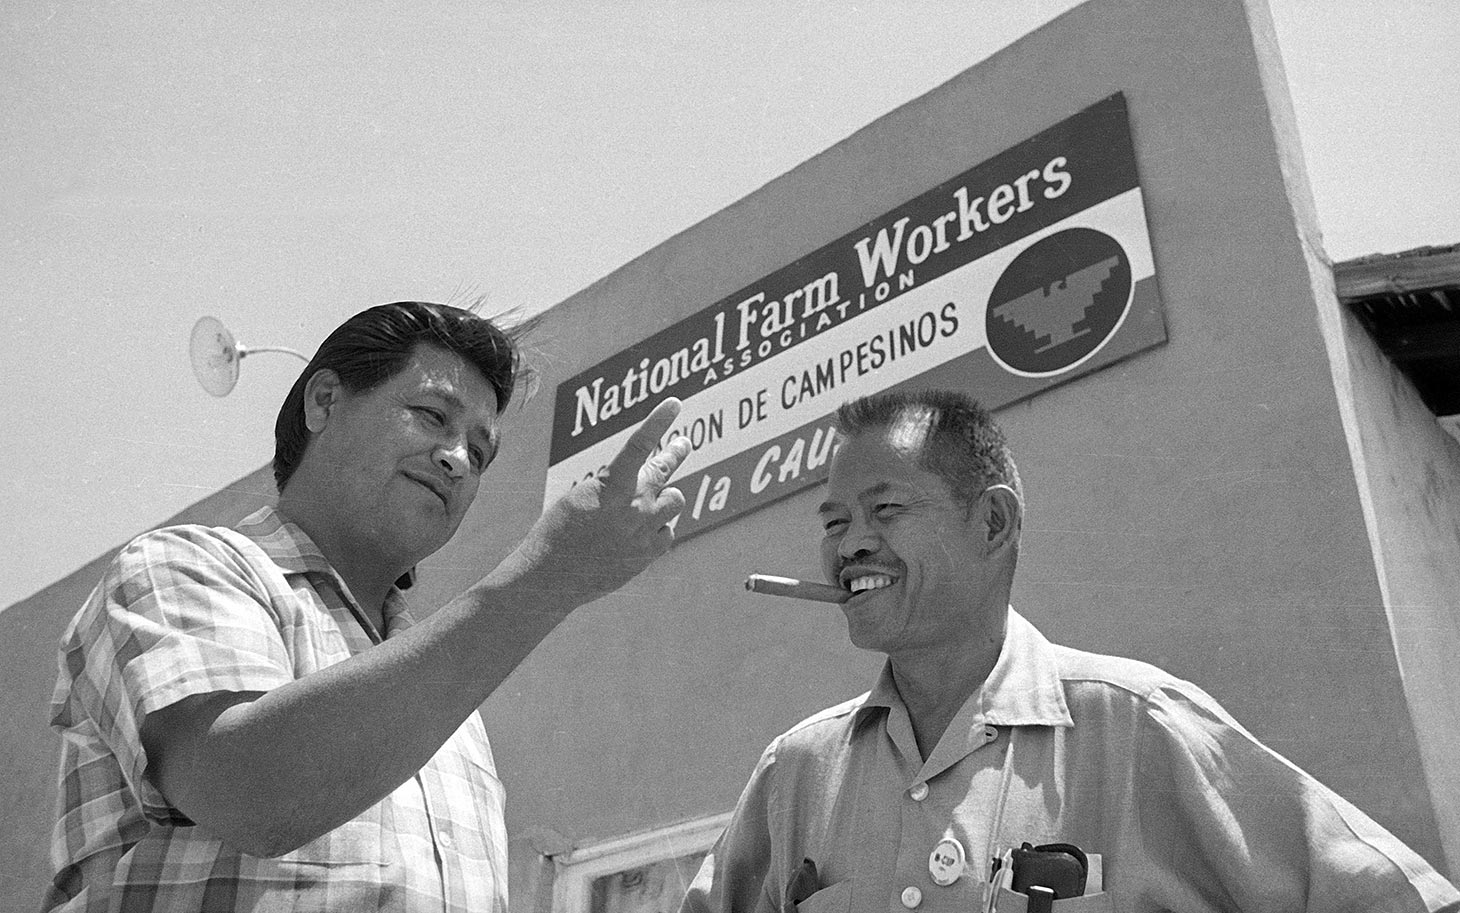 The Filipinos in the Field: The Lesser Known History of the Farmworkers Union